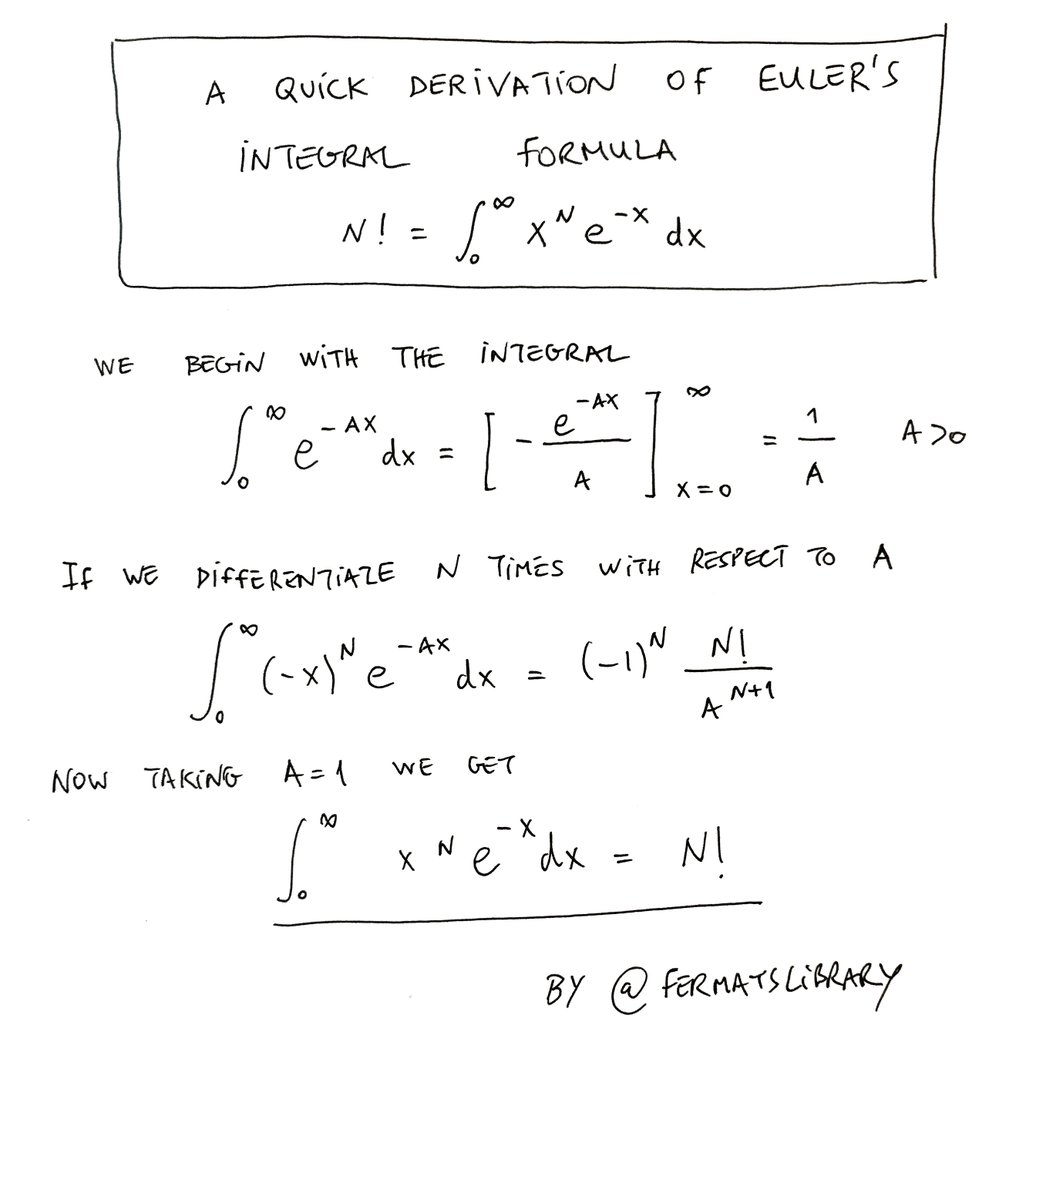 Fermat S Library On Twitter A Quick Derivation Of Euler